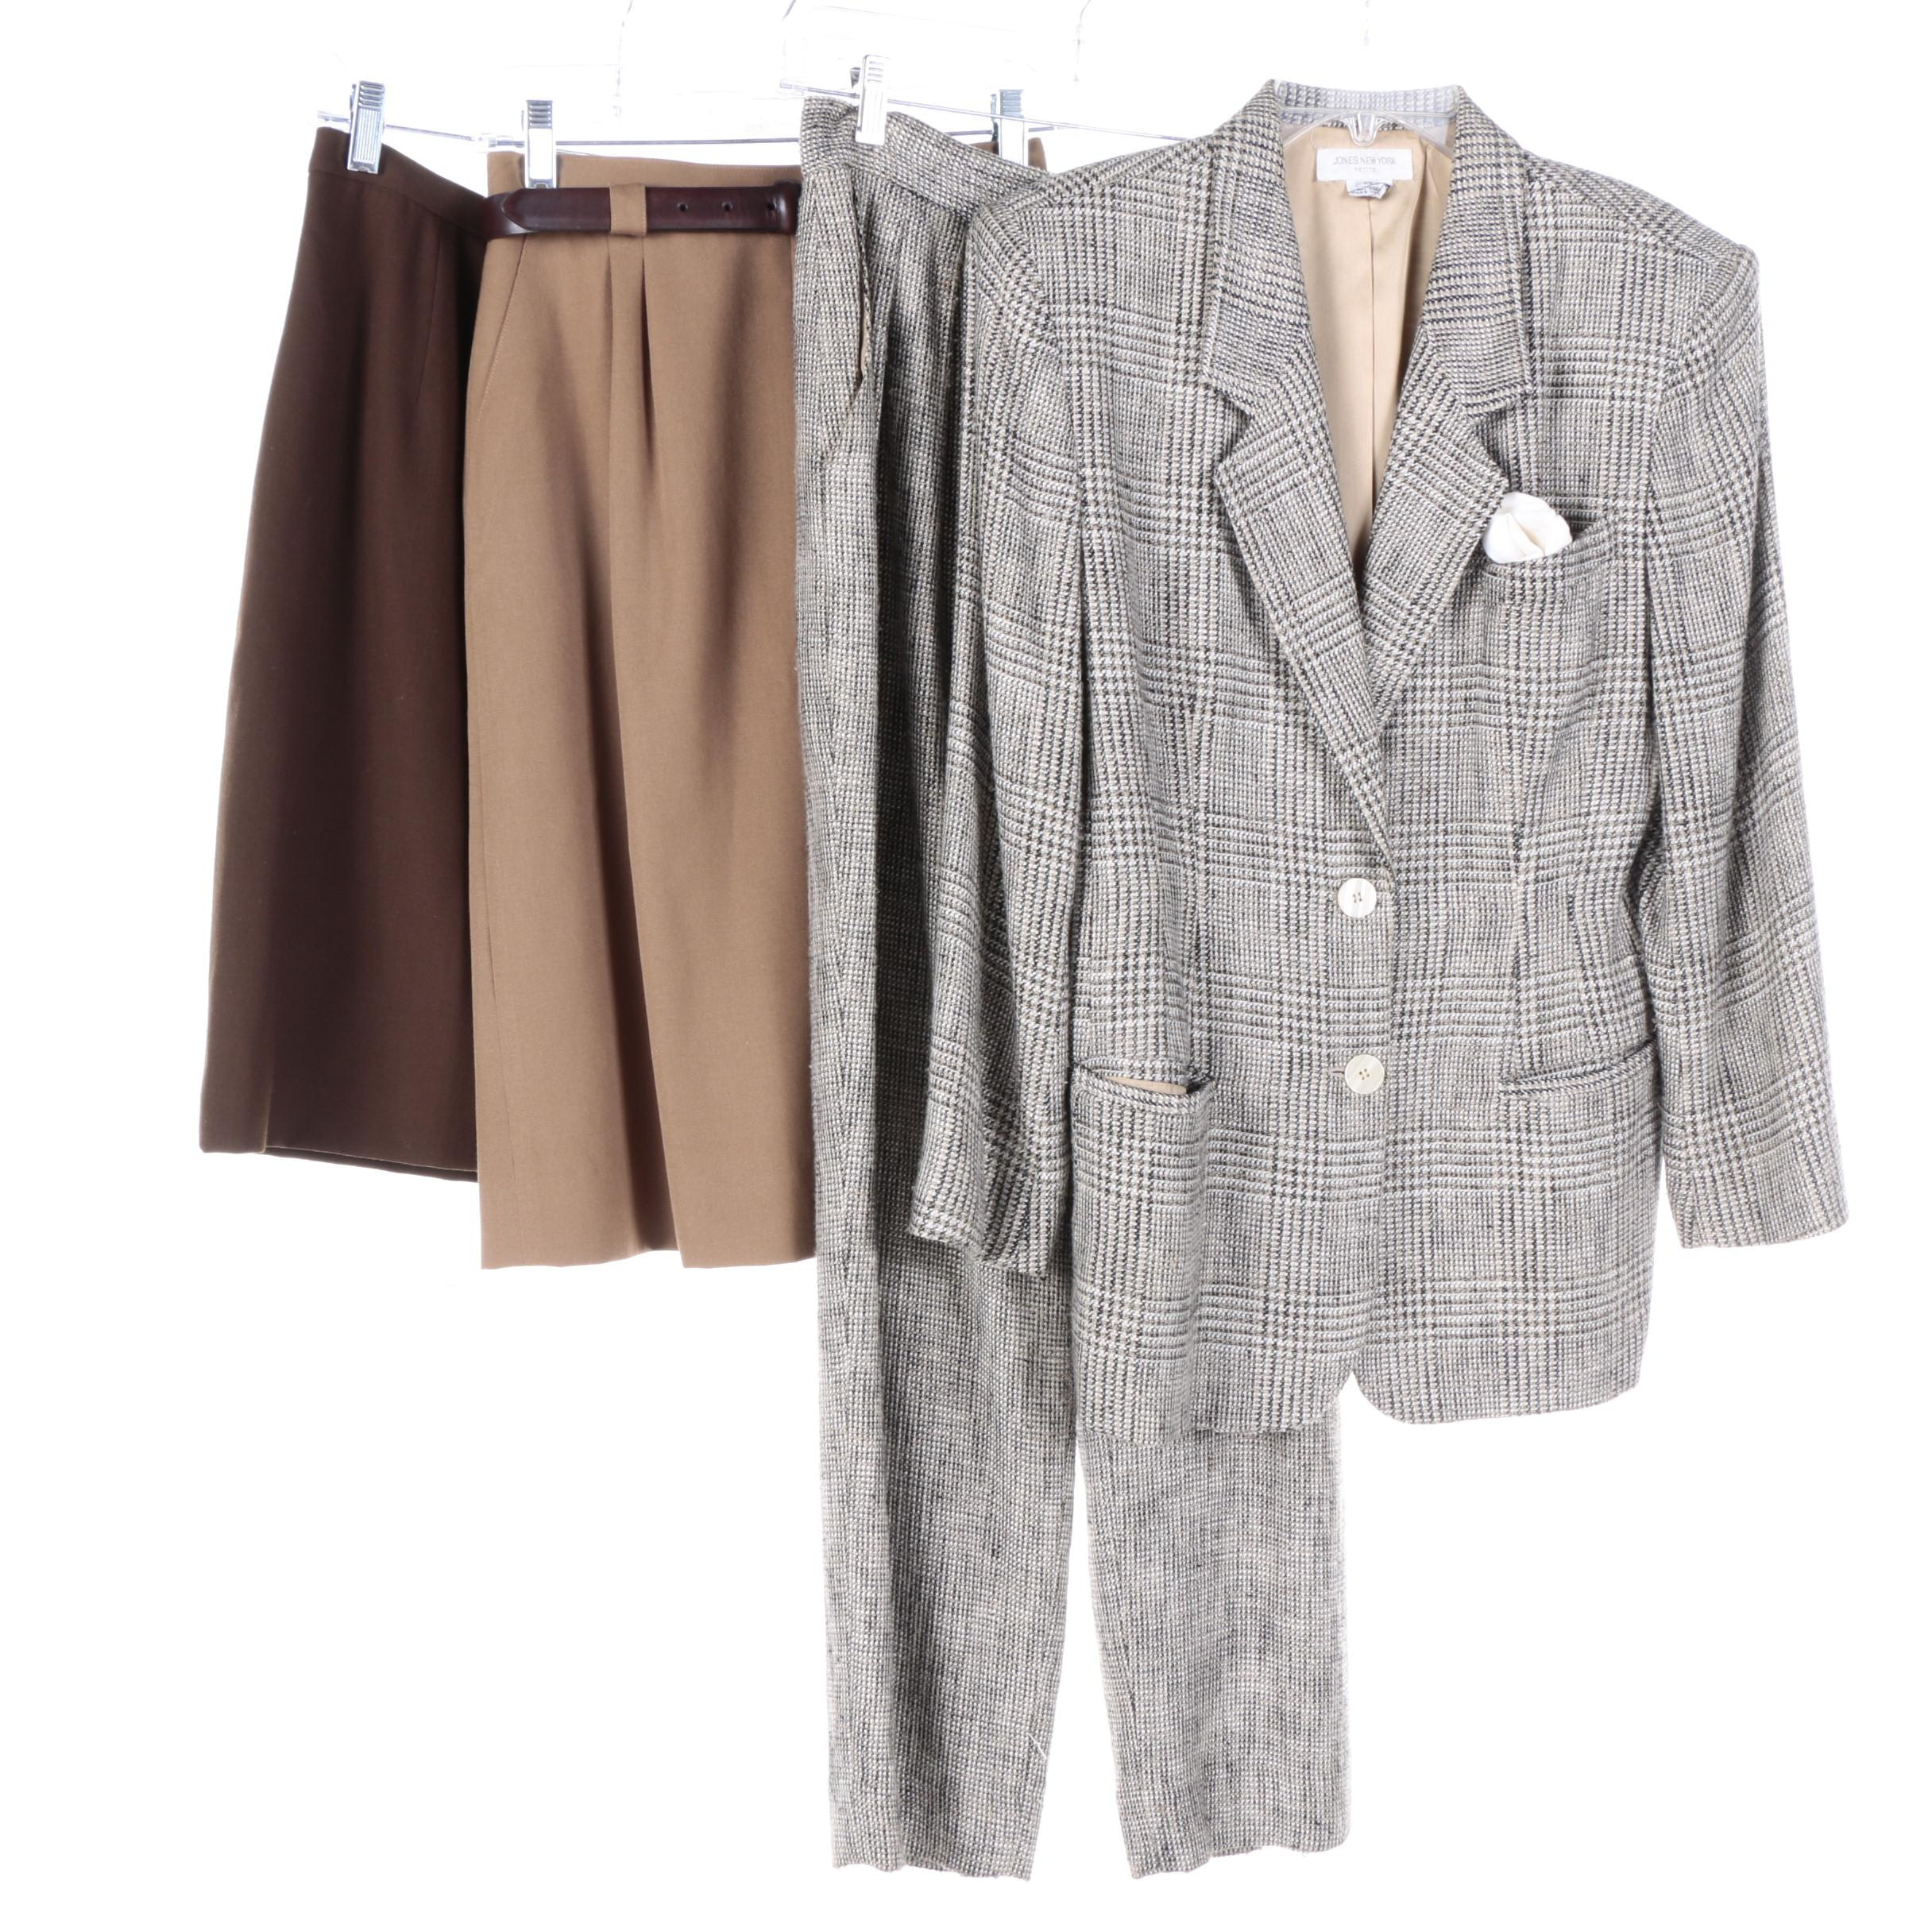 Women's Jones New York Pantsuit, Skirts and Belt